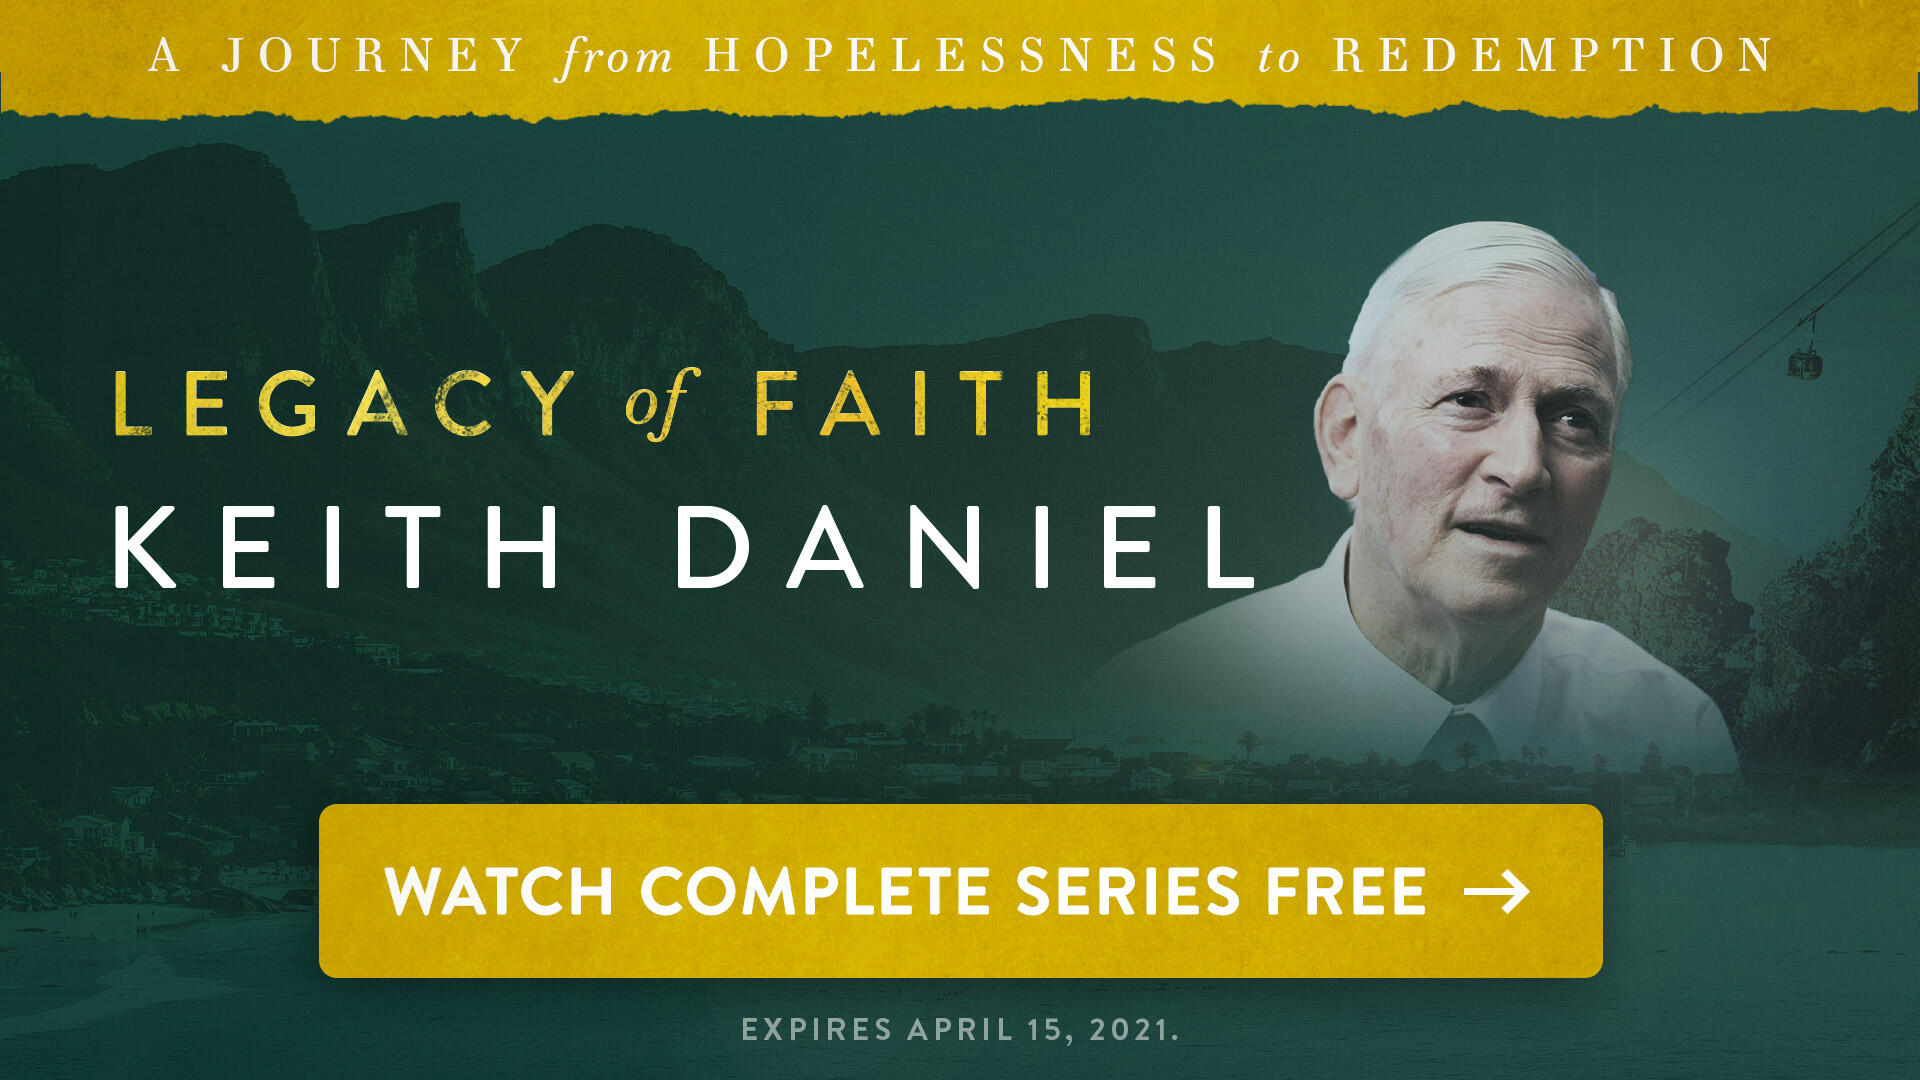 Watch Legacy of Faith Keith Daniel complete series until 4/15